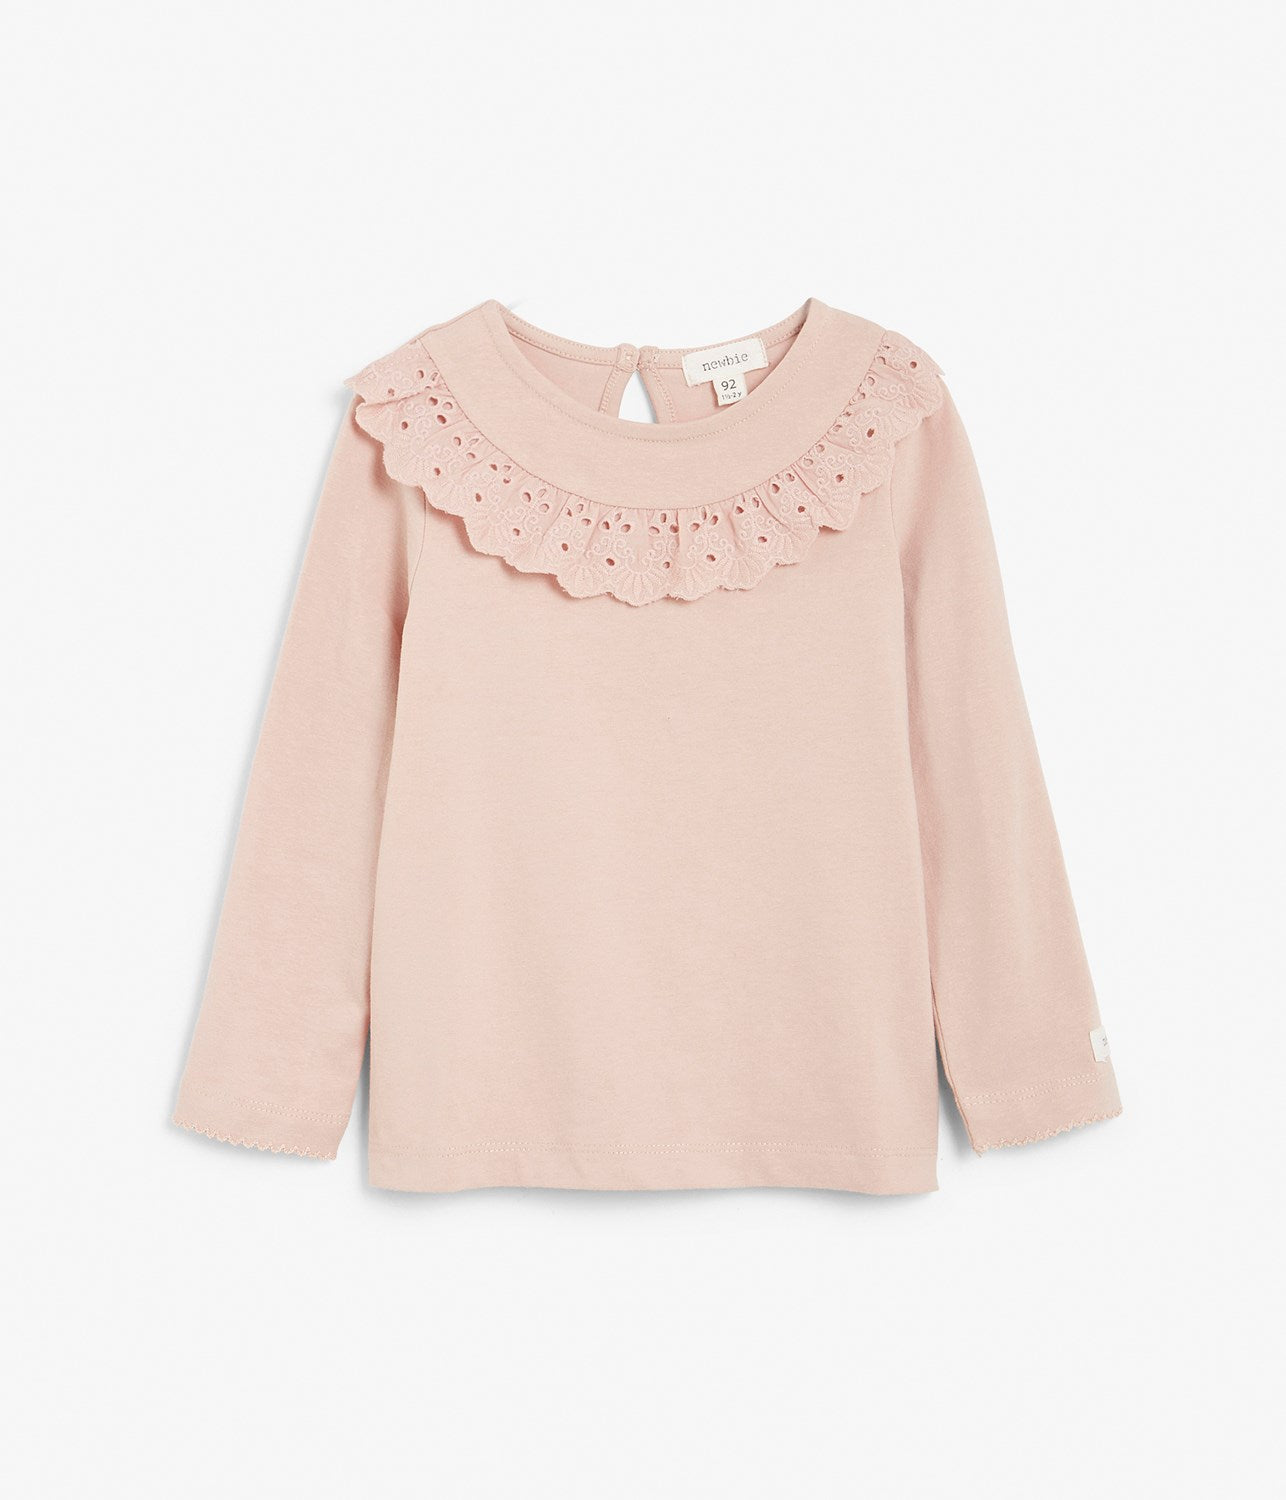 Kids pink lace long sleeve top